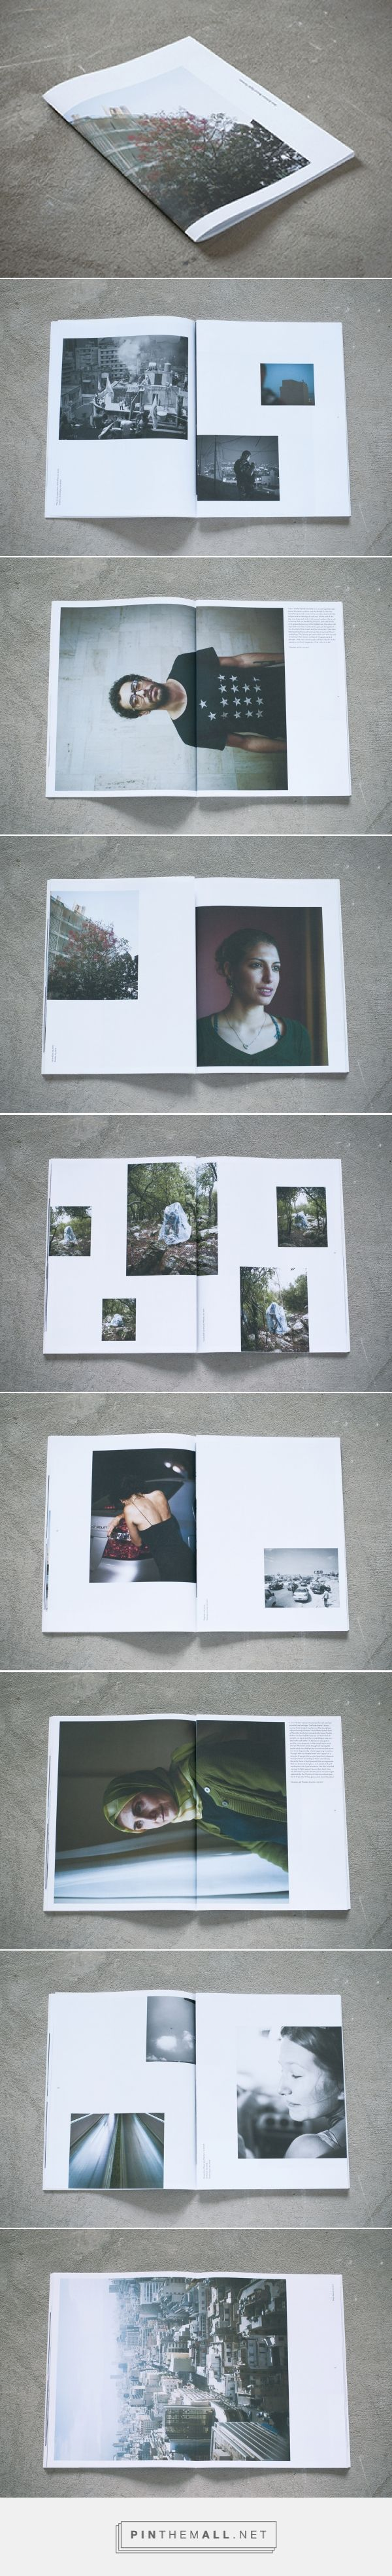 #layout #photobook #book Studio Martin Steiner › Jens Schwarz